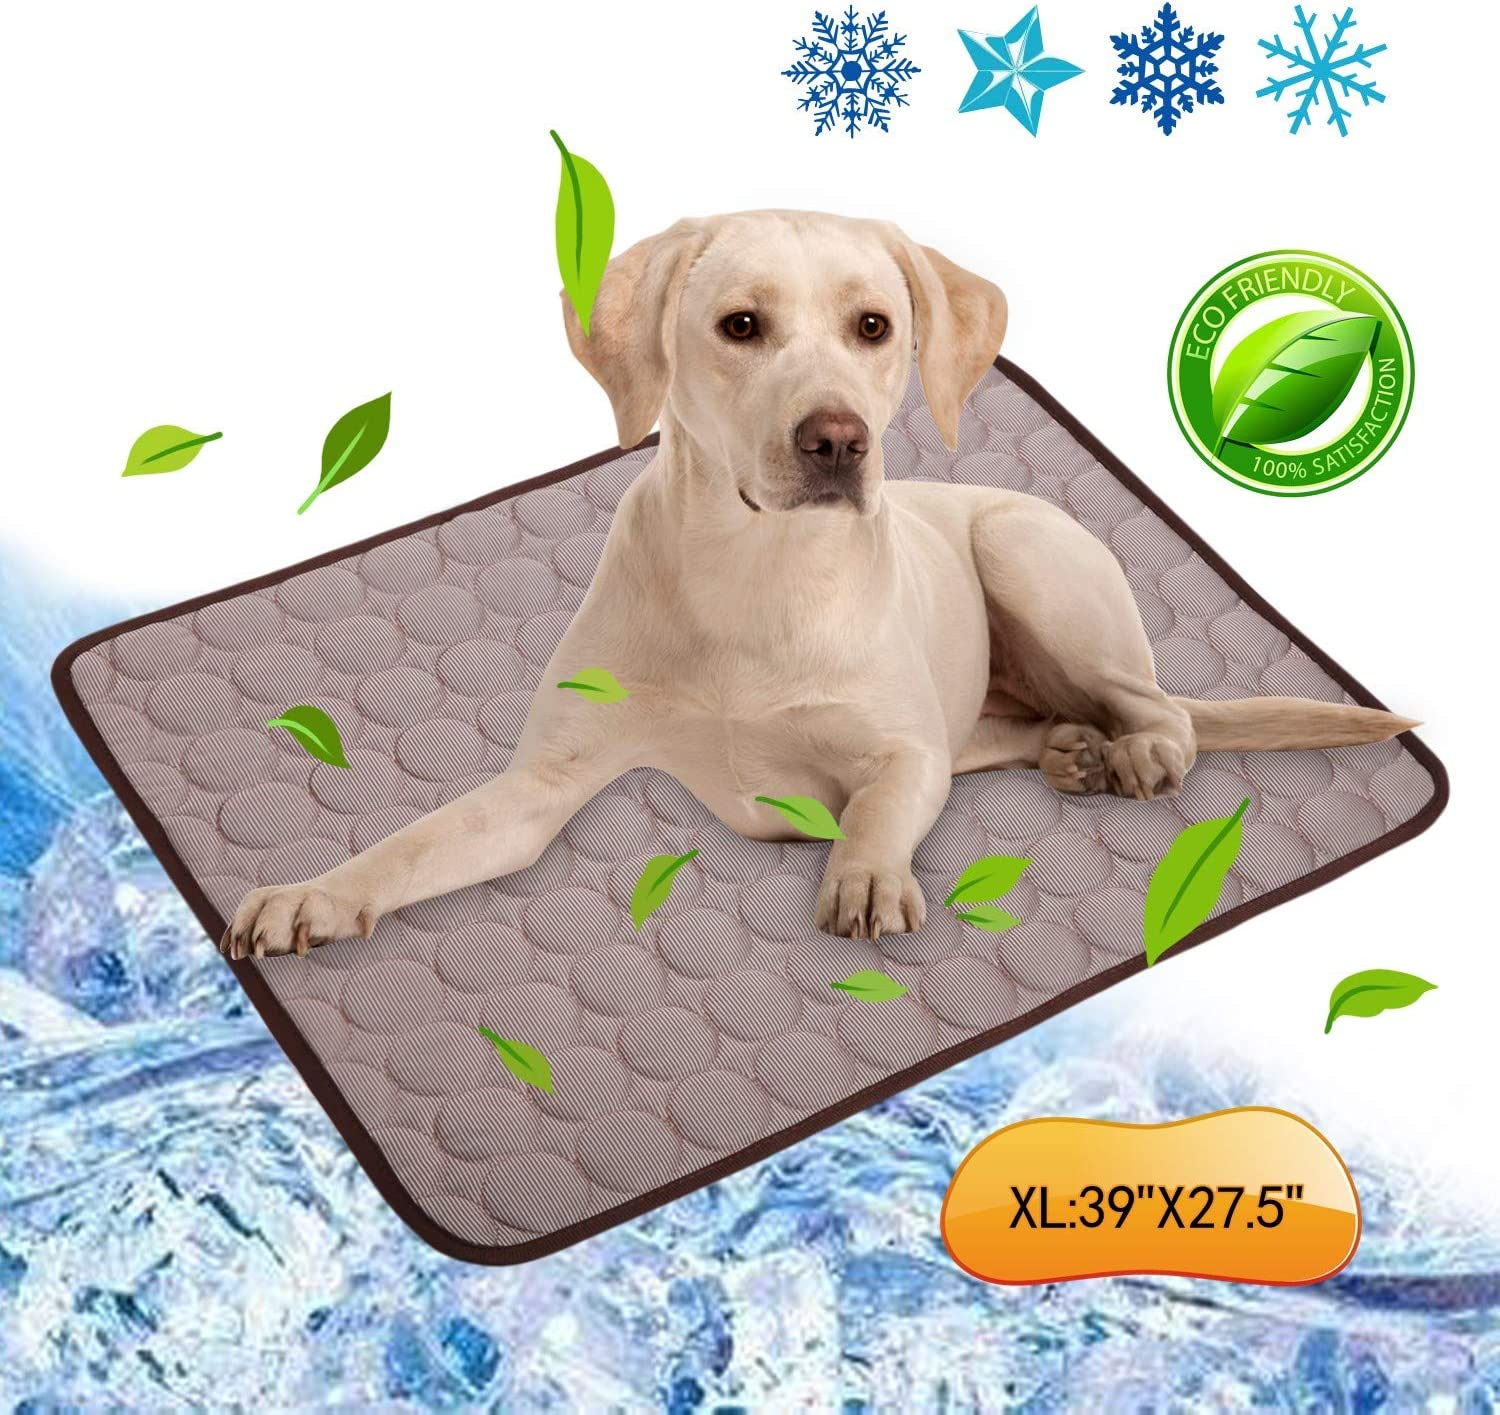 Kama Pet Cooling Mat, Self-Cooling Pad for Dogs Cats Summer Sleeping Mat Bed Liner for Small Medium Large Dogs